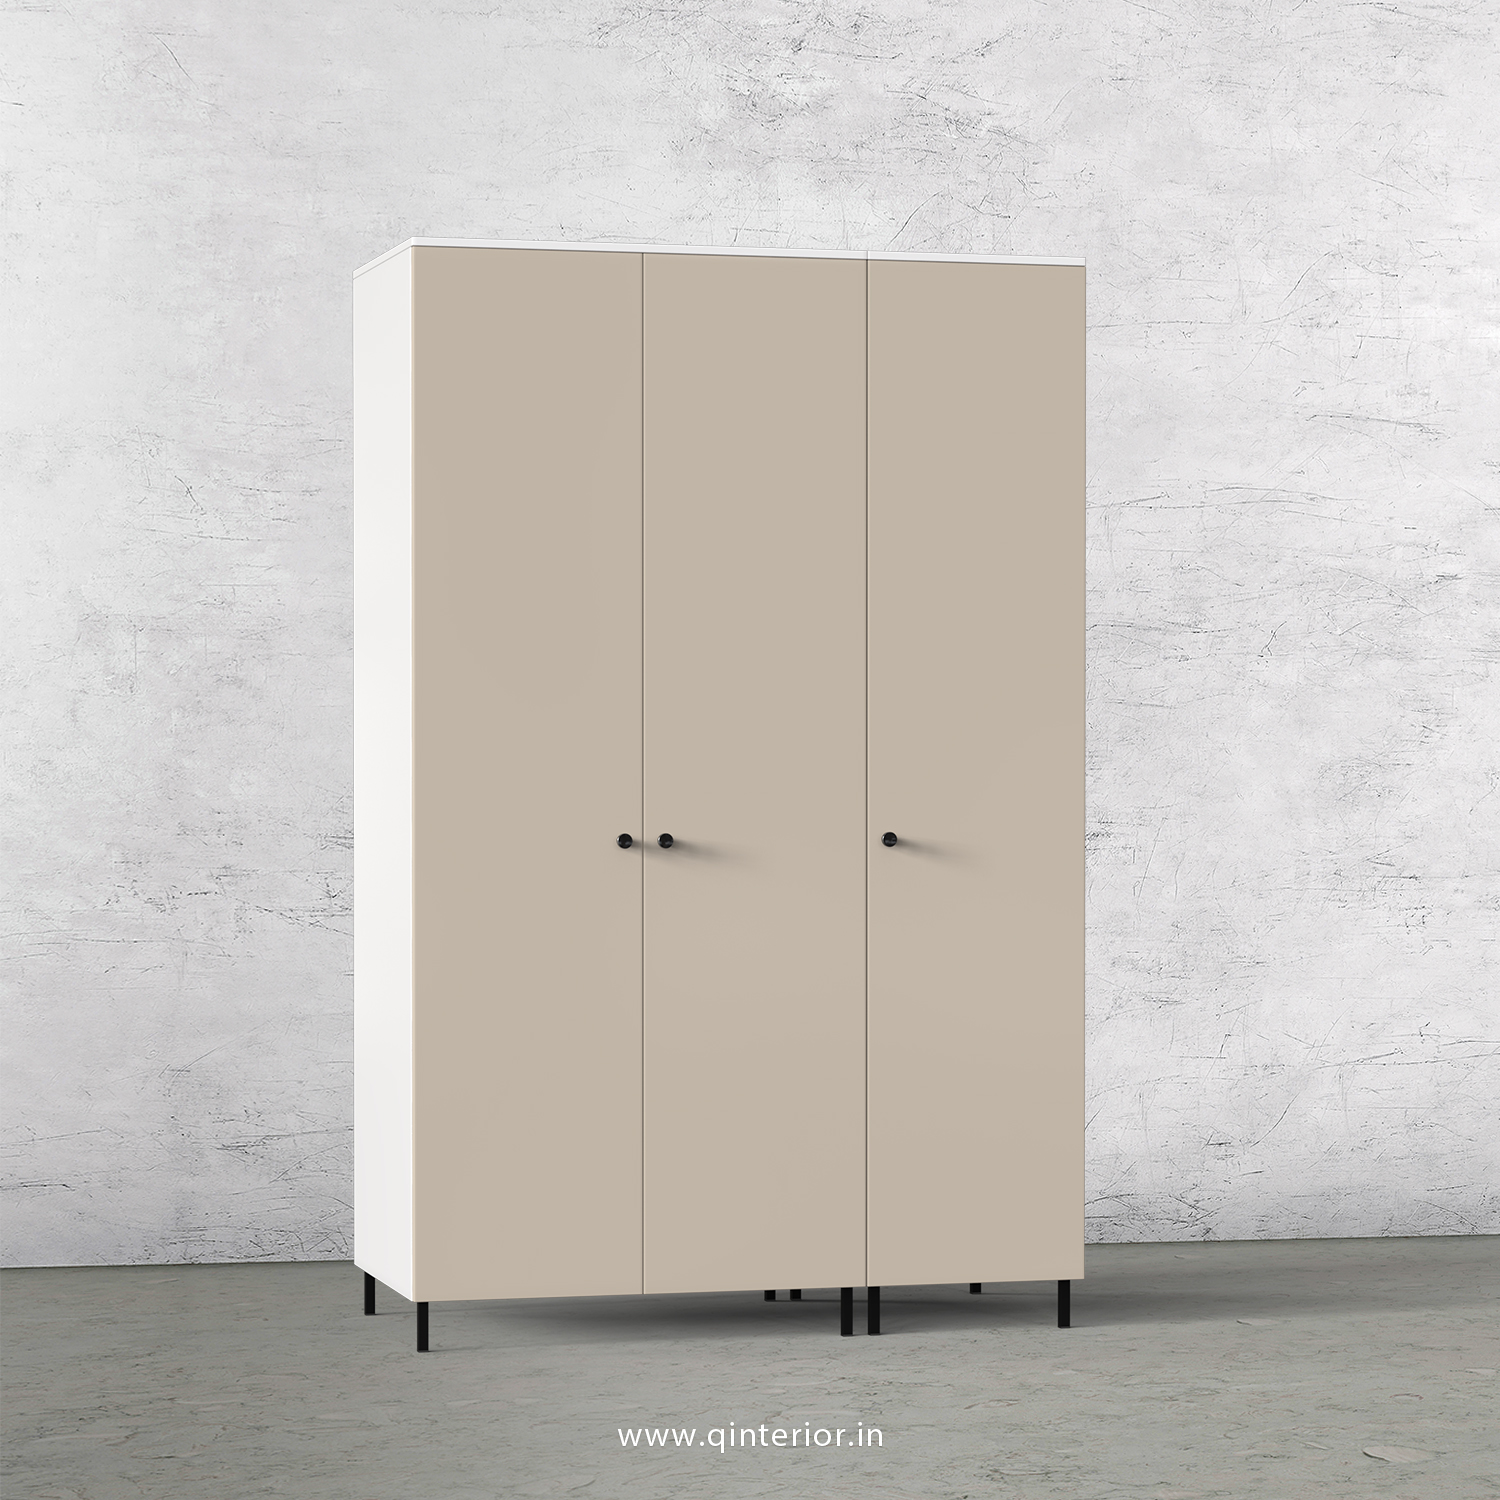 Lambent 3 Door Wardrobe in White and Irish Cream Finish – TWRD001 C88